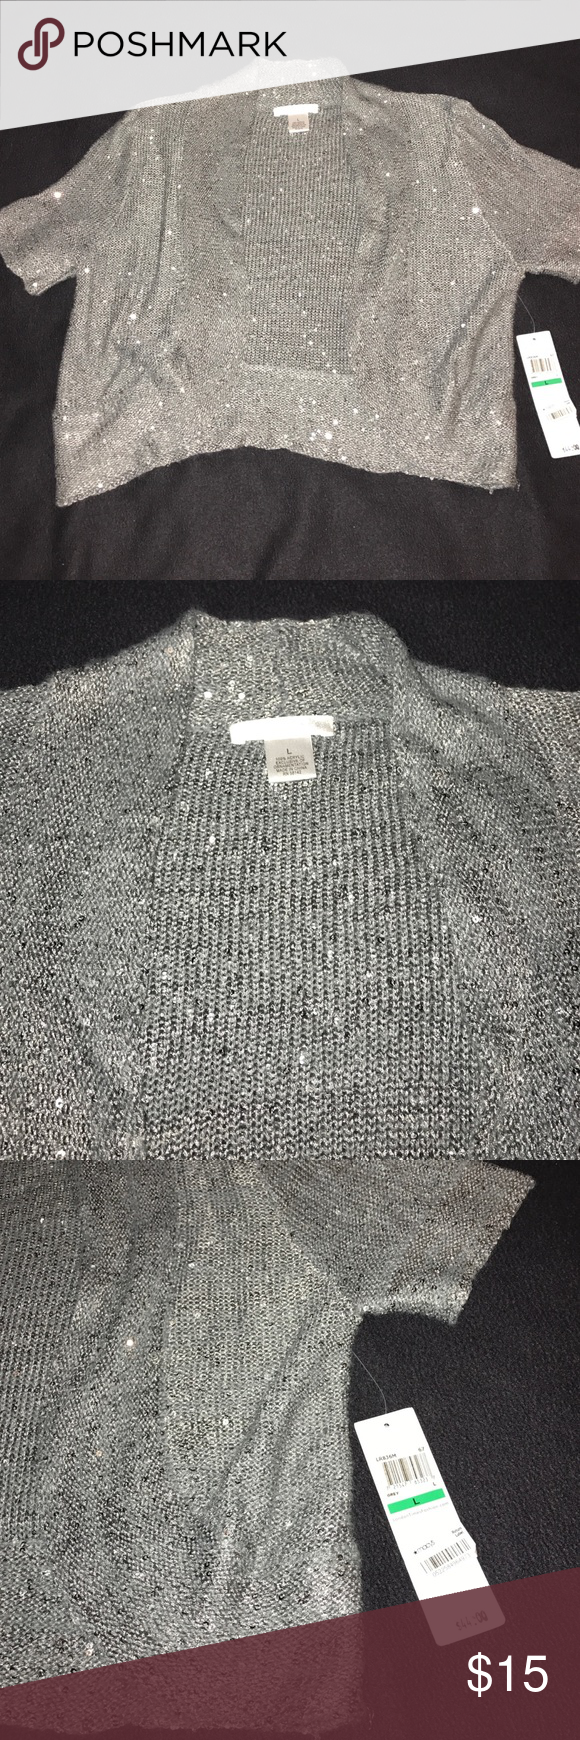 NWT London Times Sweater NWT | Silver sequin, Gray dress and Sequins